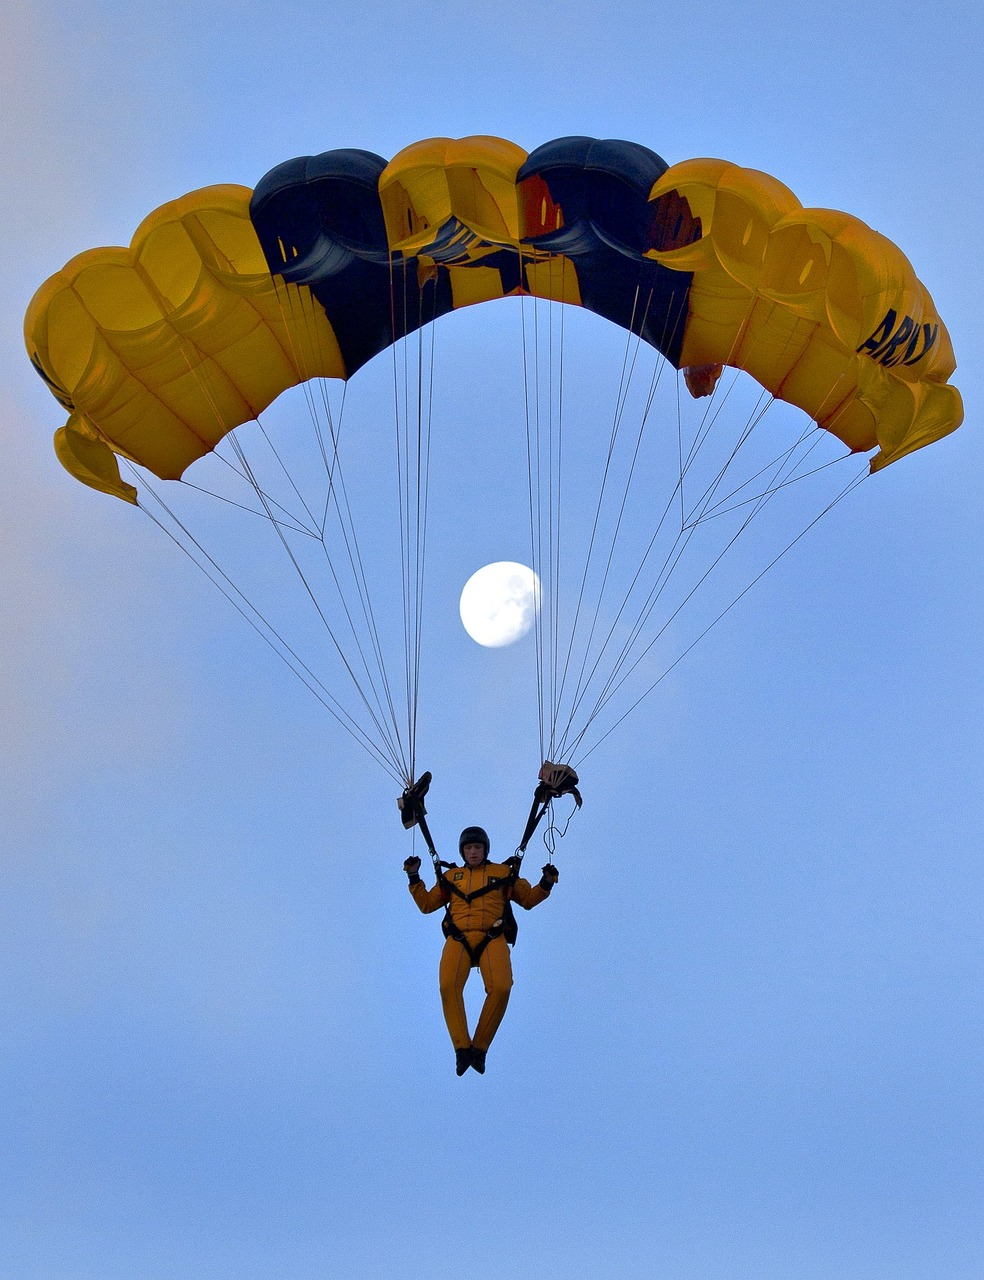 skydiver-913129_1280